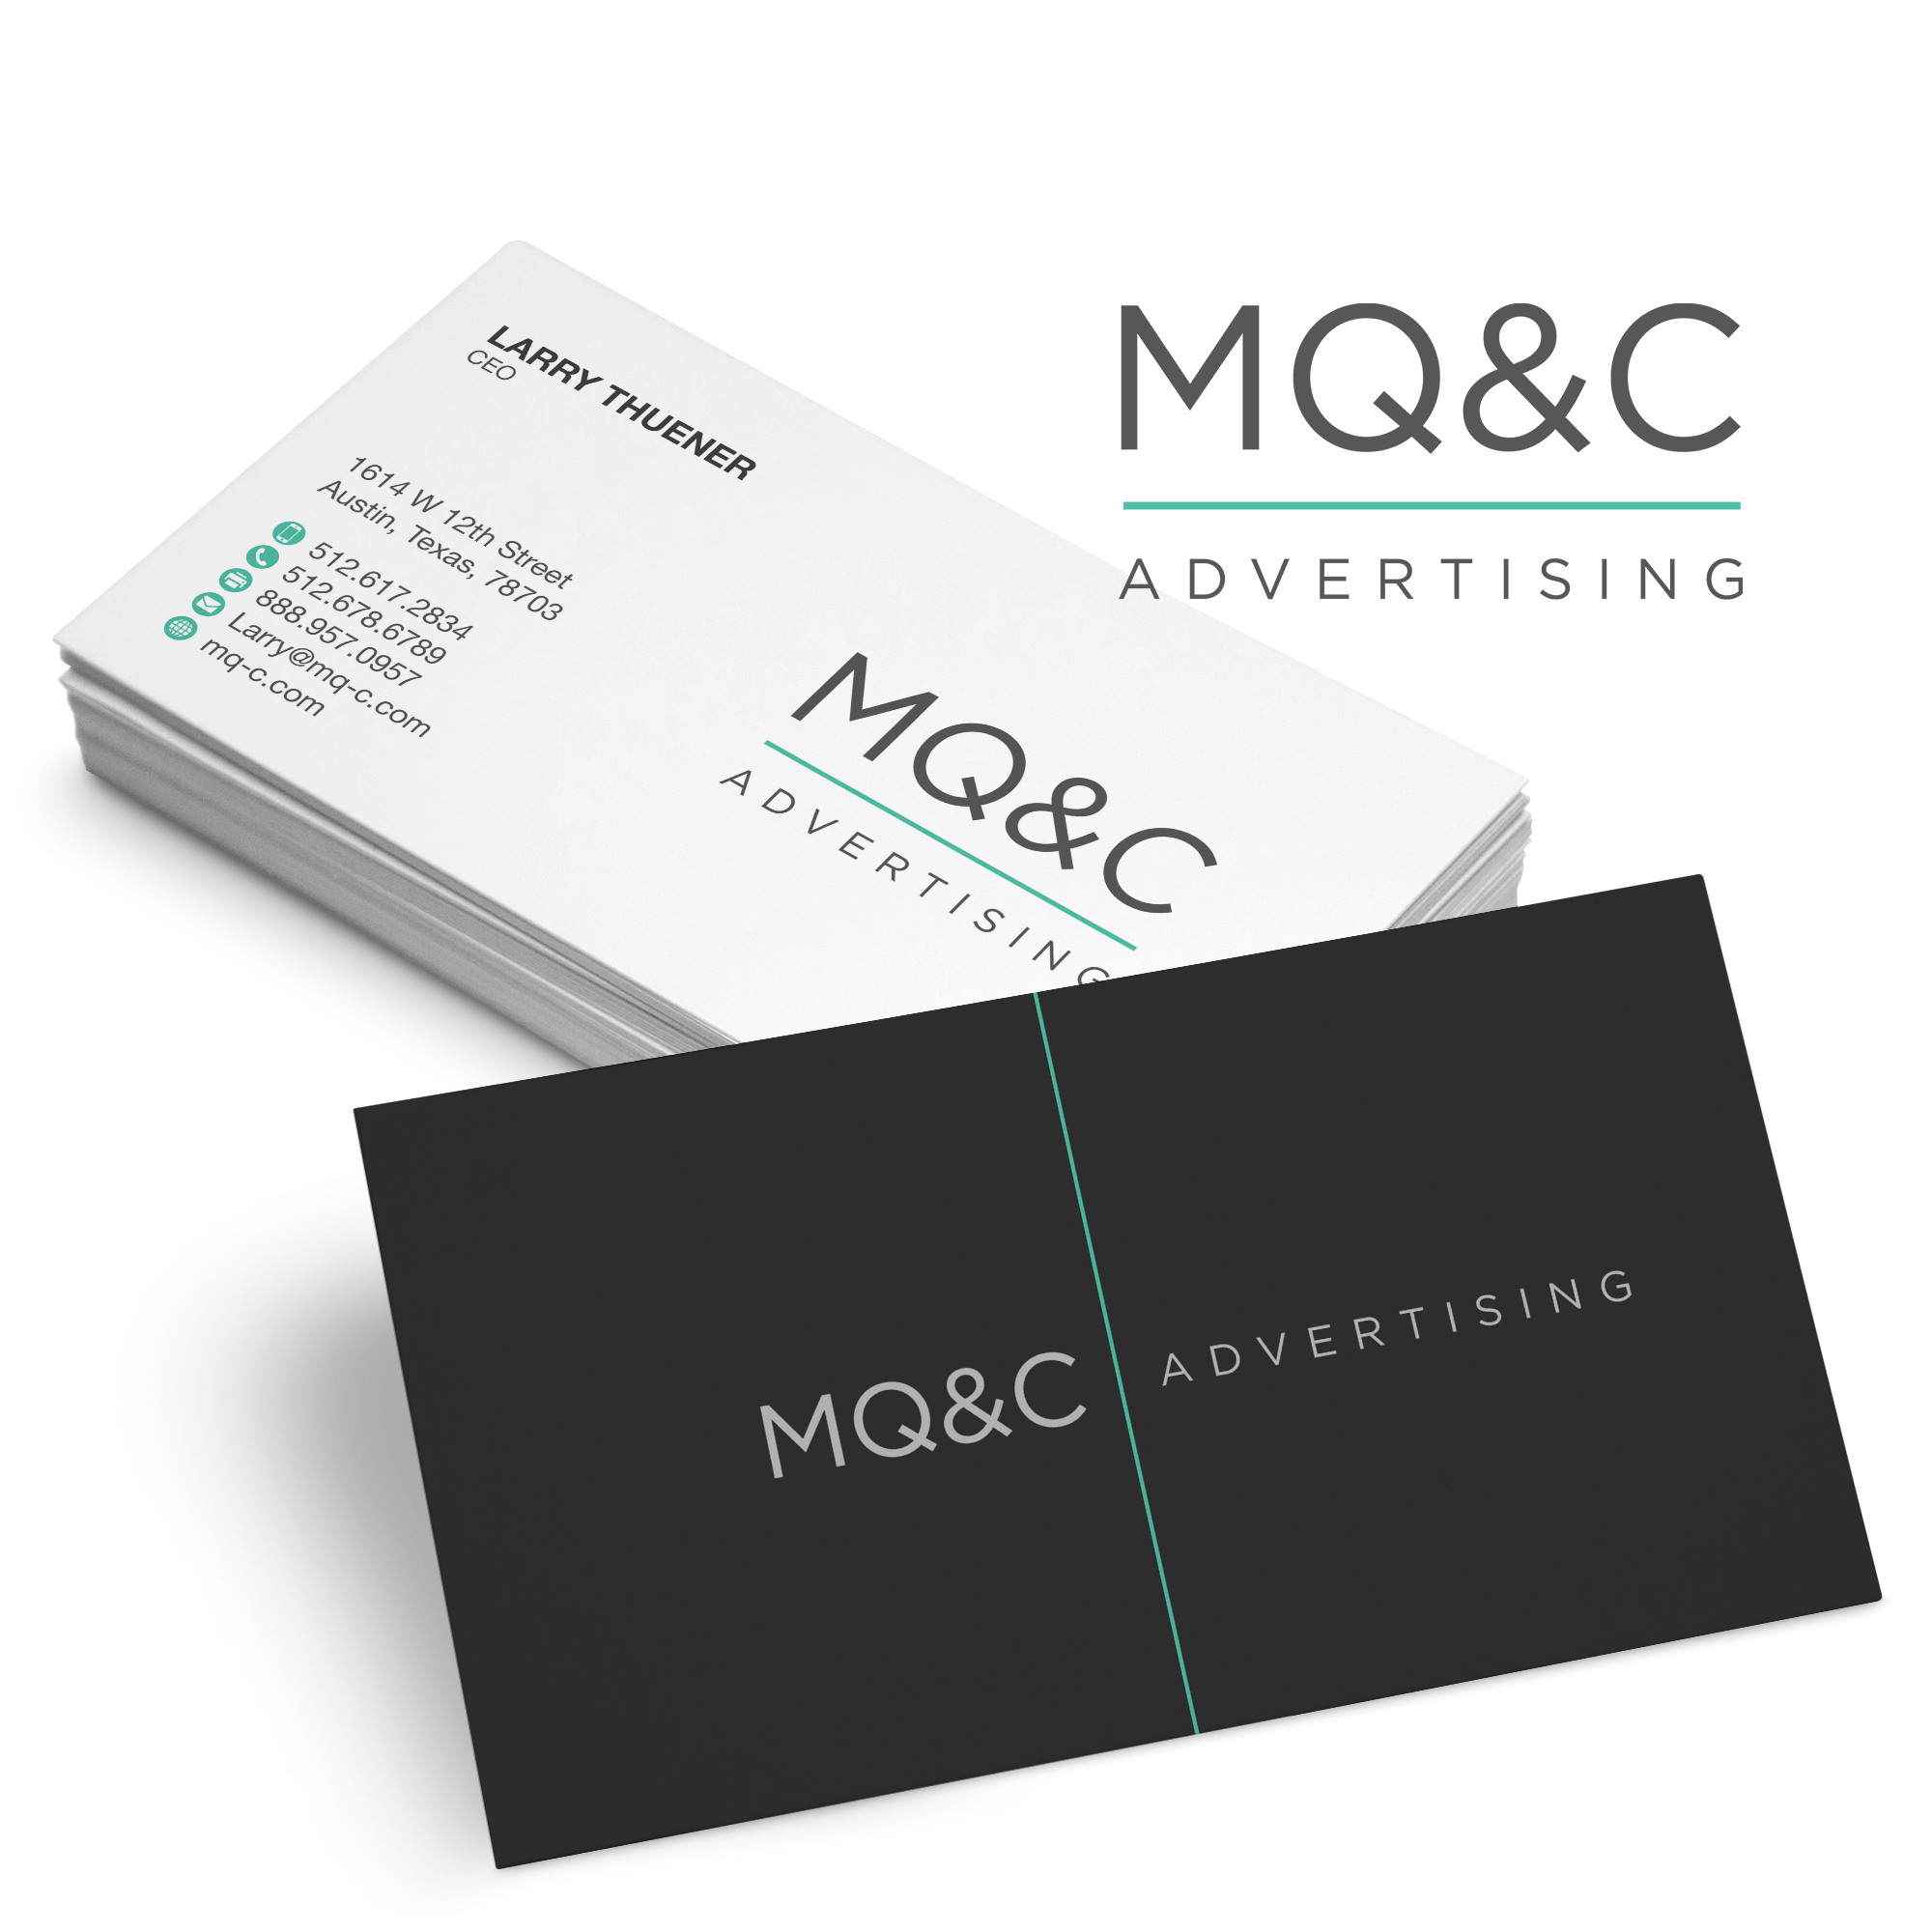 Business card logos get a custom logo for business cards 99designs logo business card design by bluemooon reheart Gallery